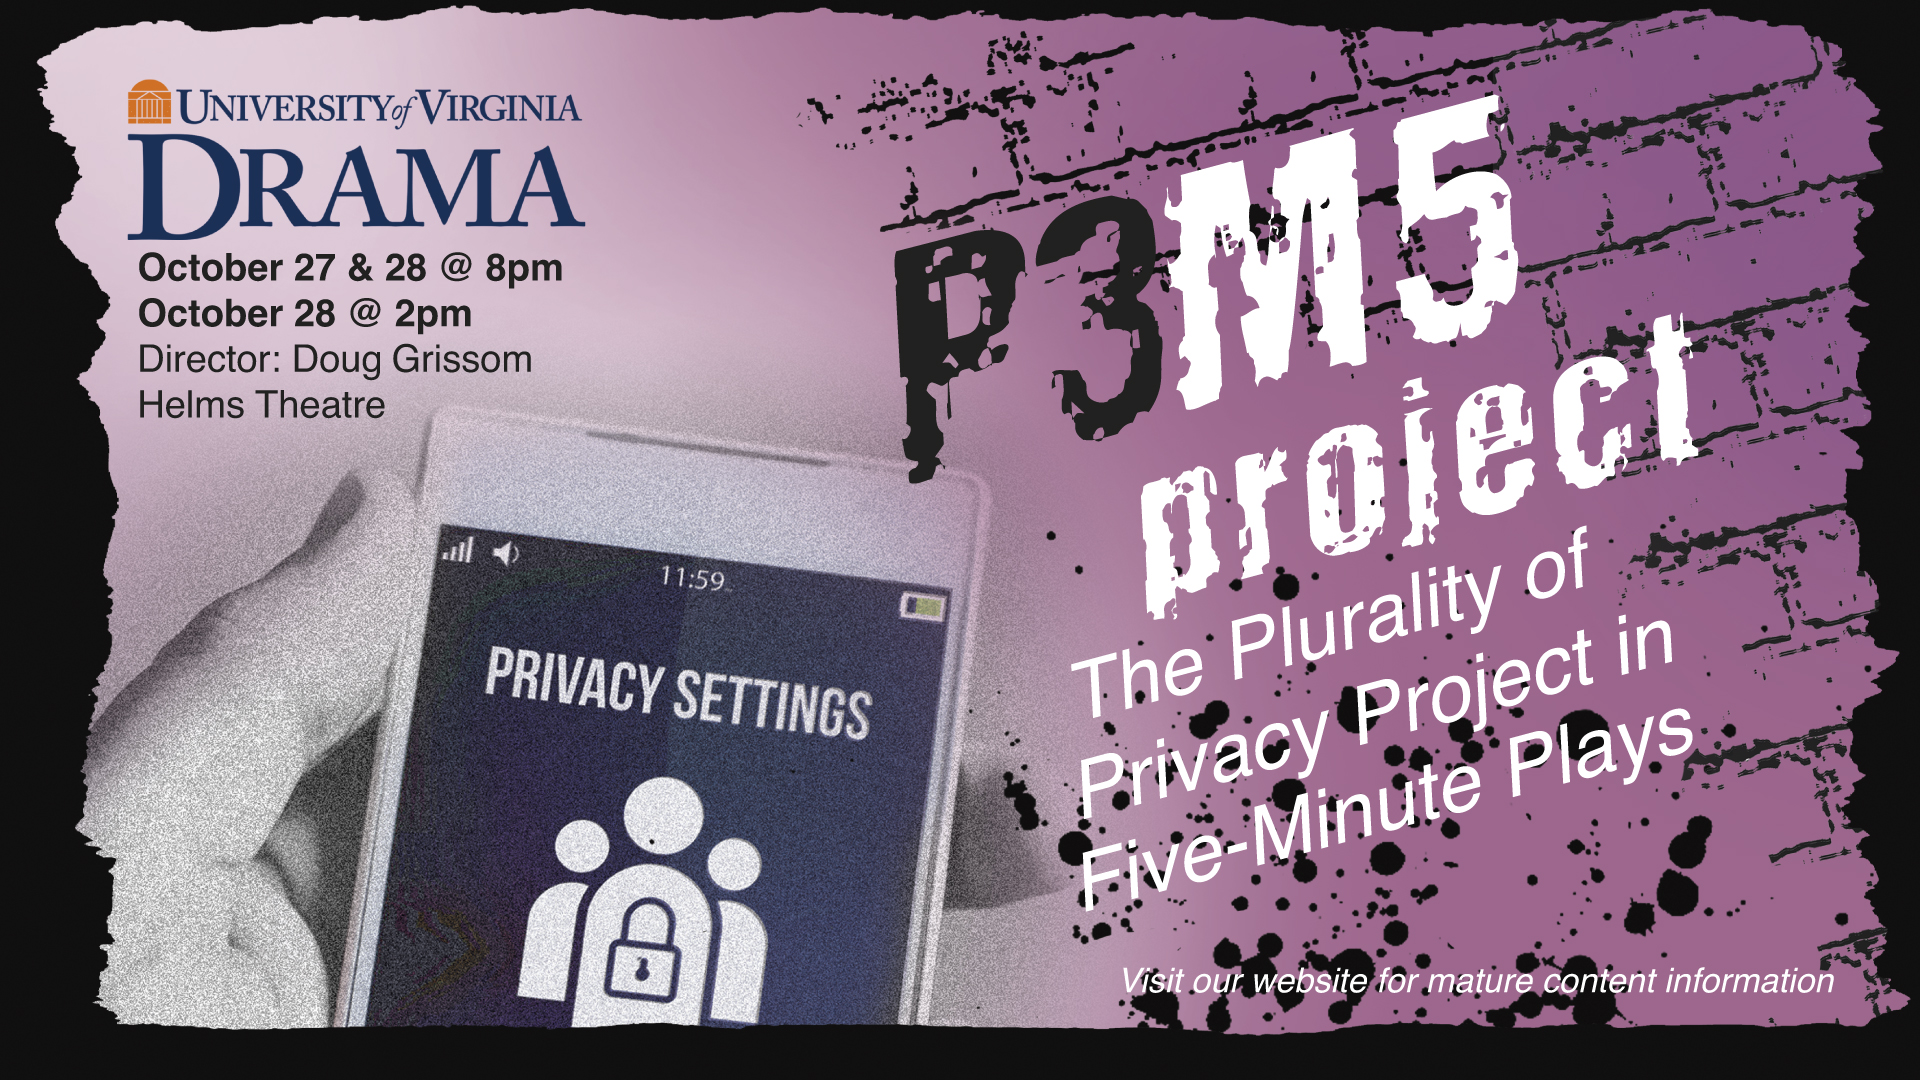 P3M5 Promotional Poster